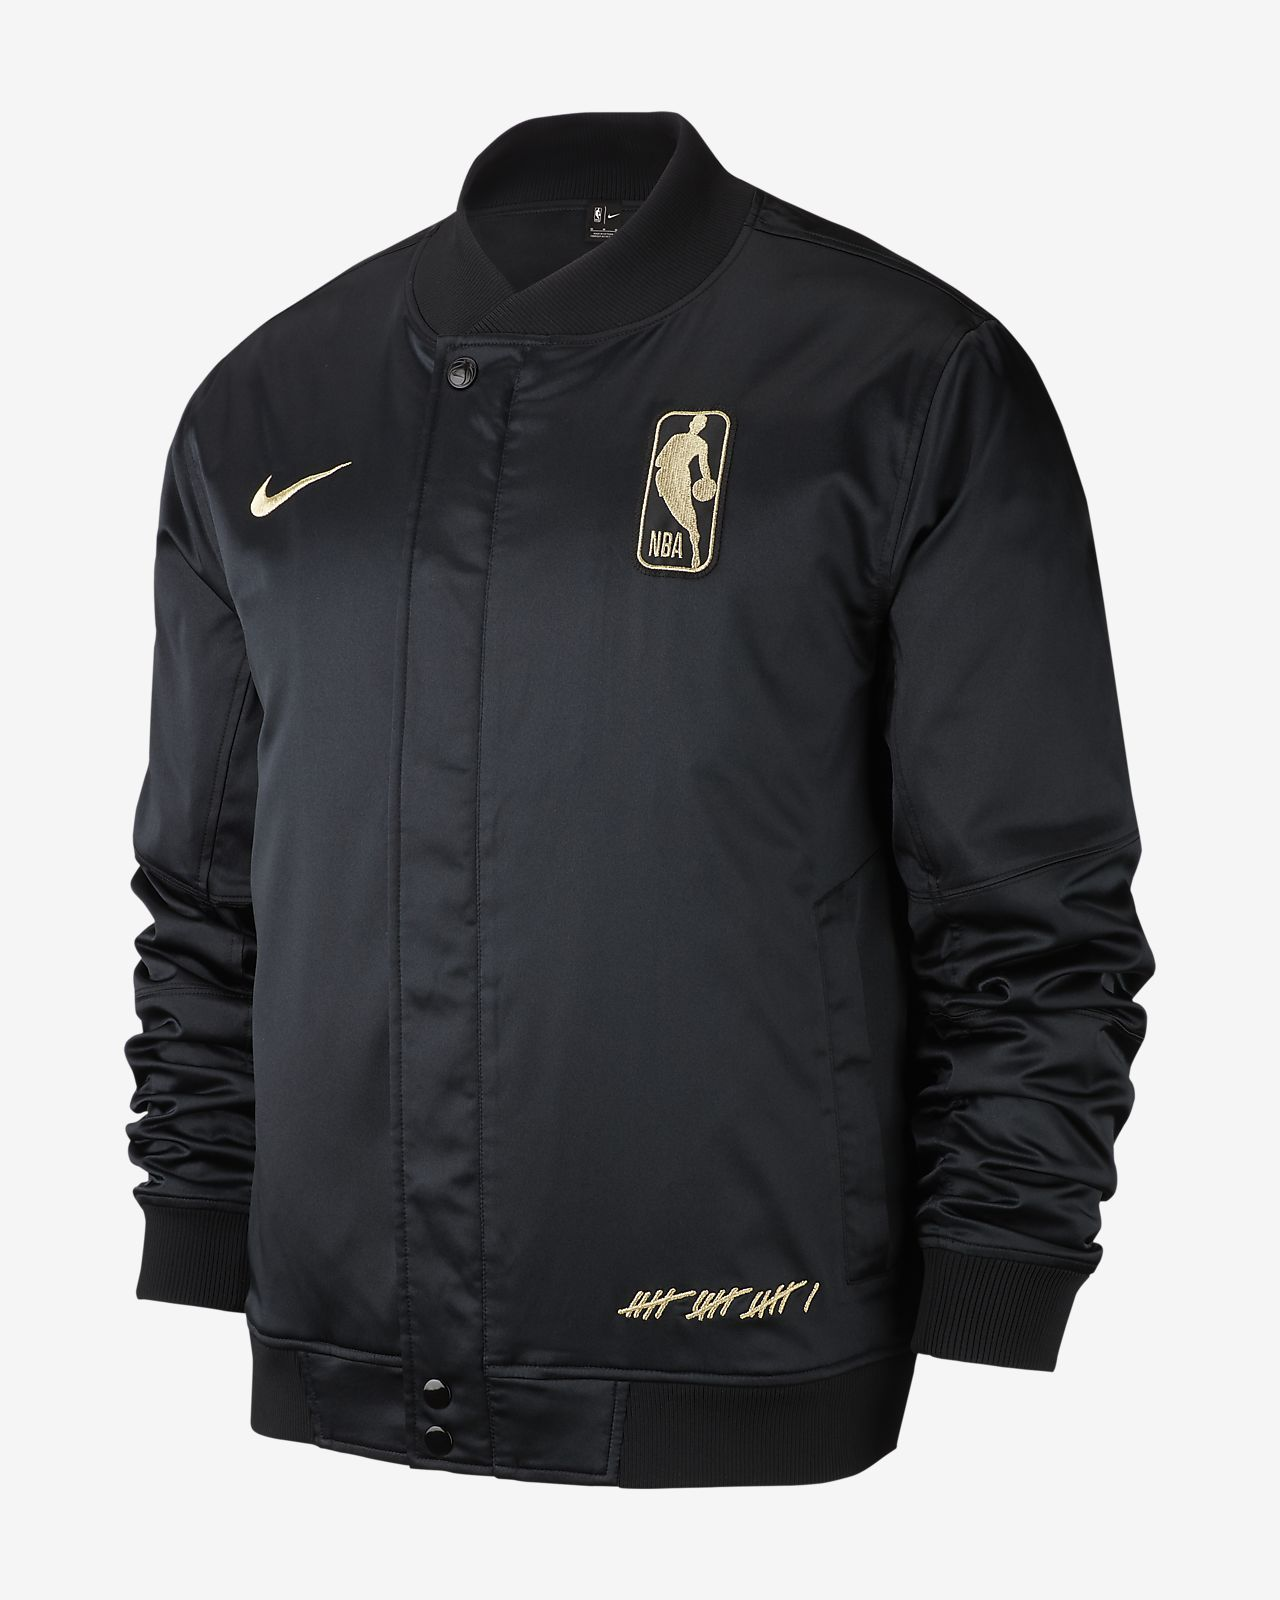 separation shoes 01856 1713d Nike Finals Association Men s NBA Jacket